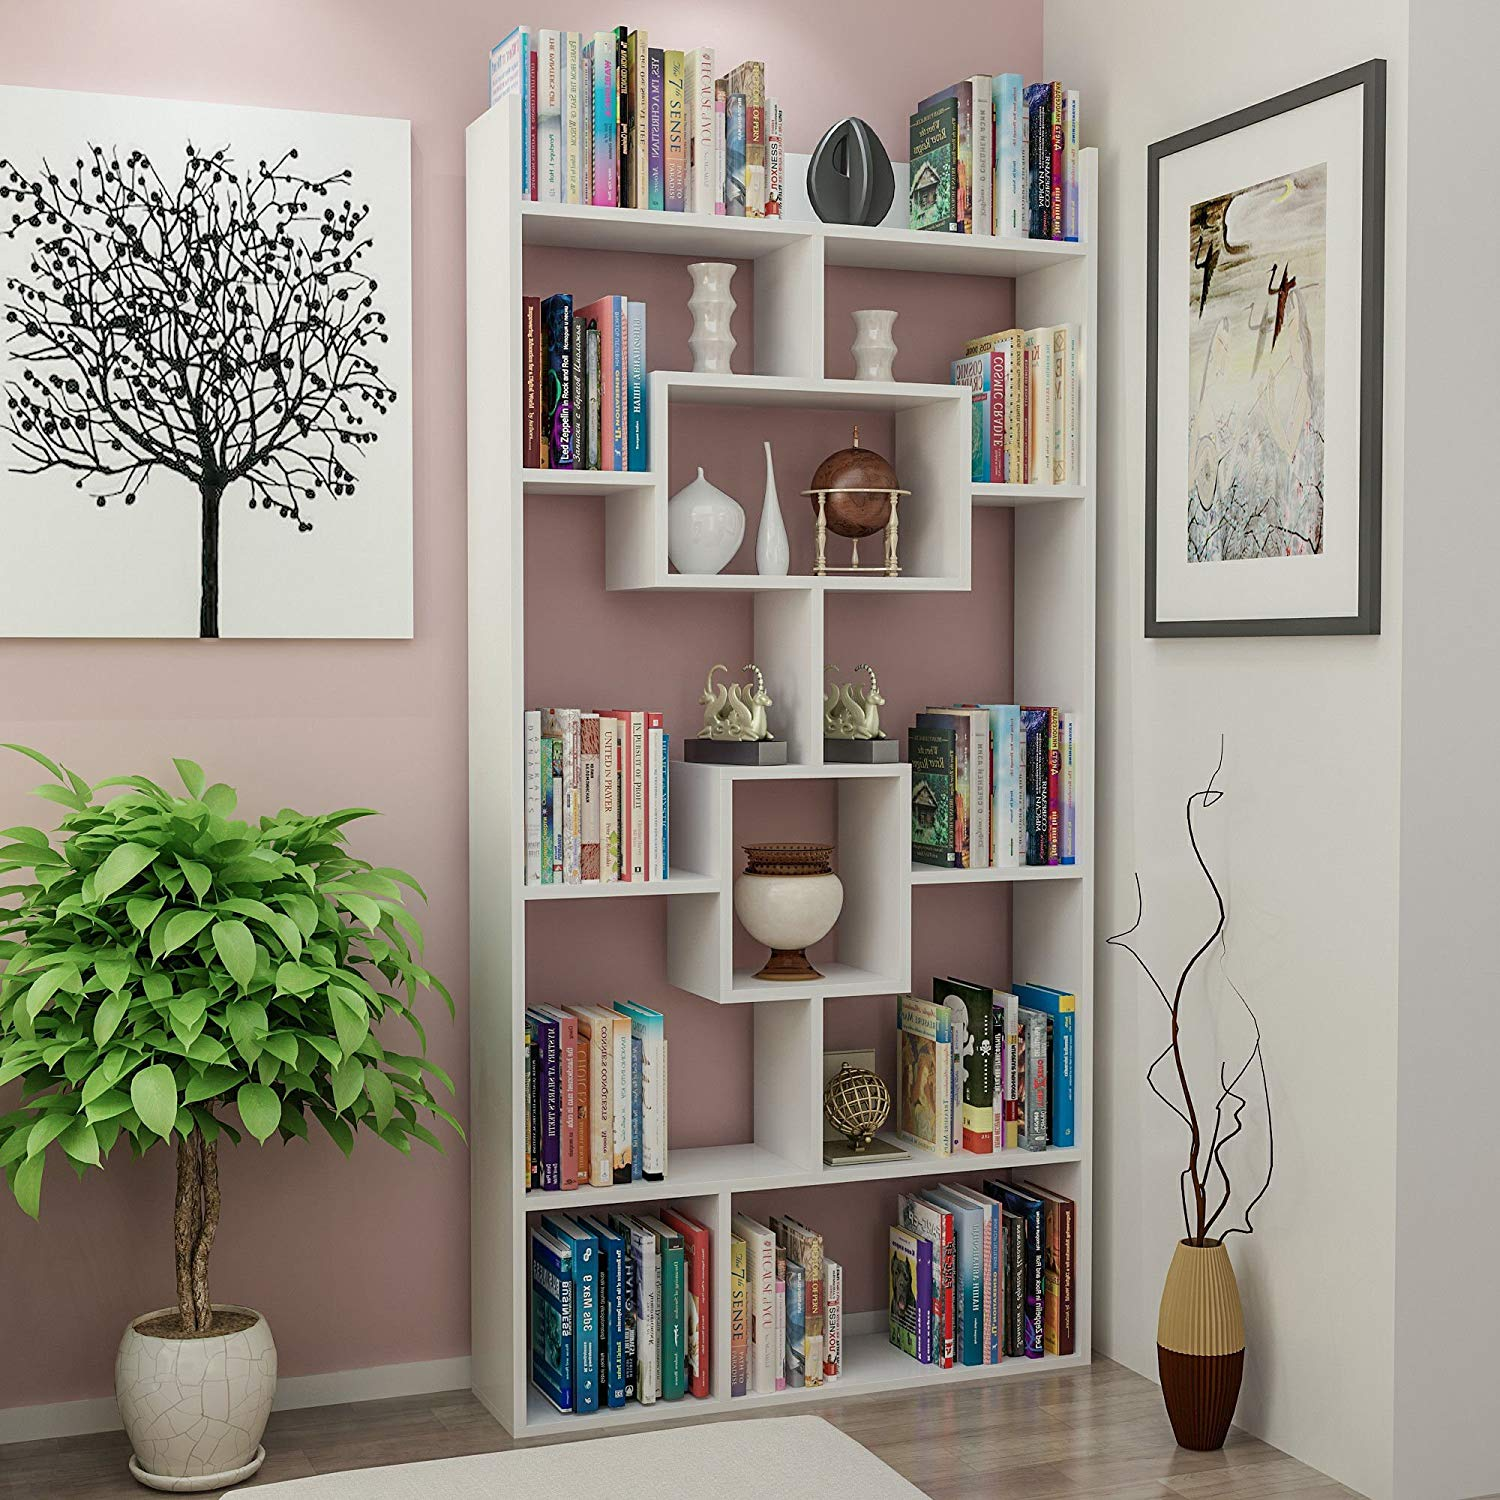 """Bookshelf (71.7"""" x 34.5"""" x 8.7"""") Wall Mountable Invisible Brackets Easy to Hang White Decorative Stylish Functional Elegant More Shelf 100% Melamine Coated Particle Board Size - MULTI VARIANTS in STOR"""